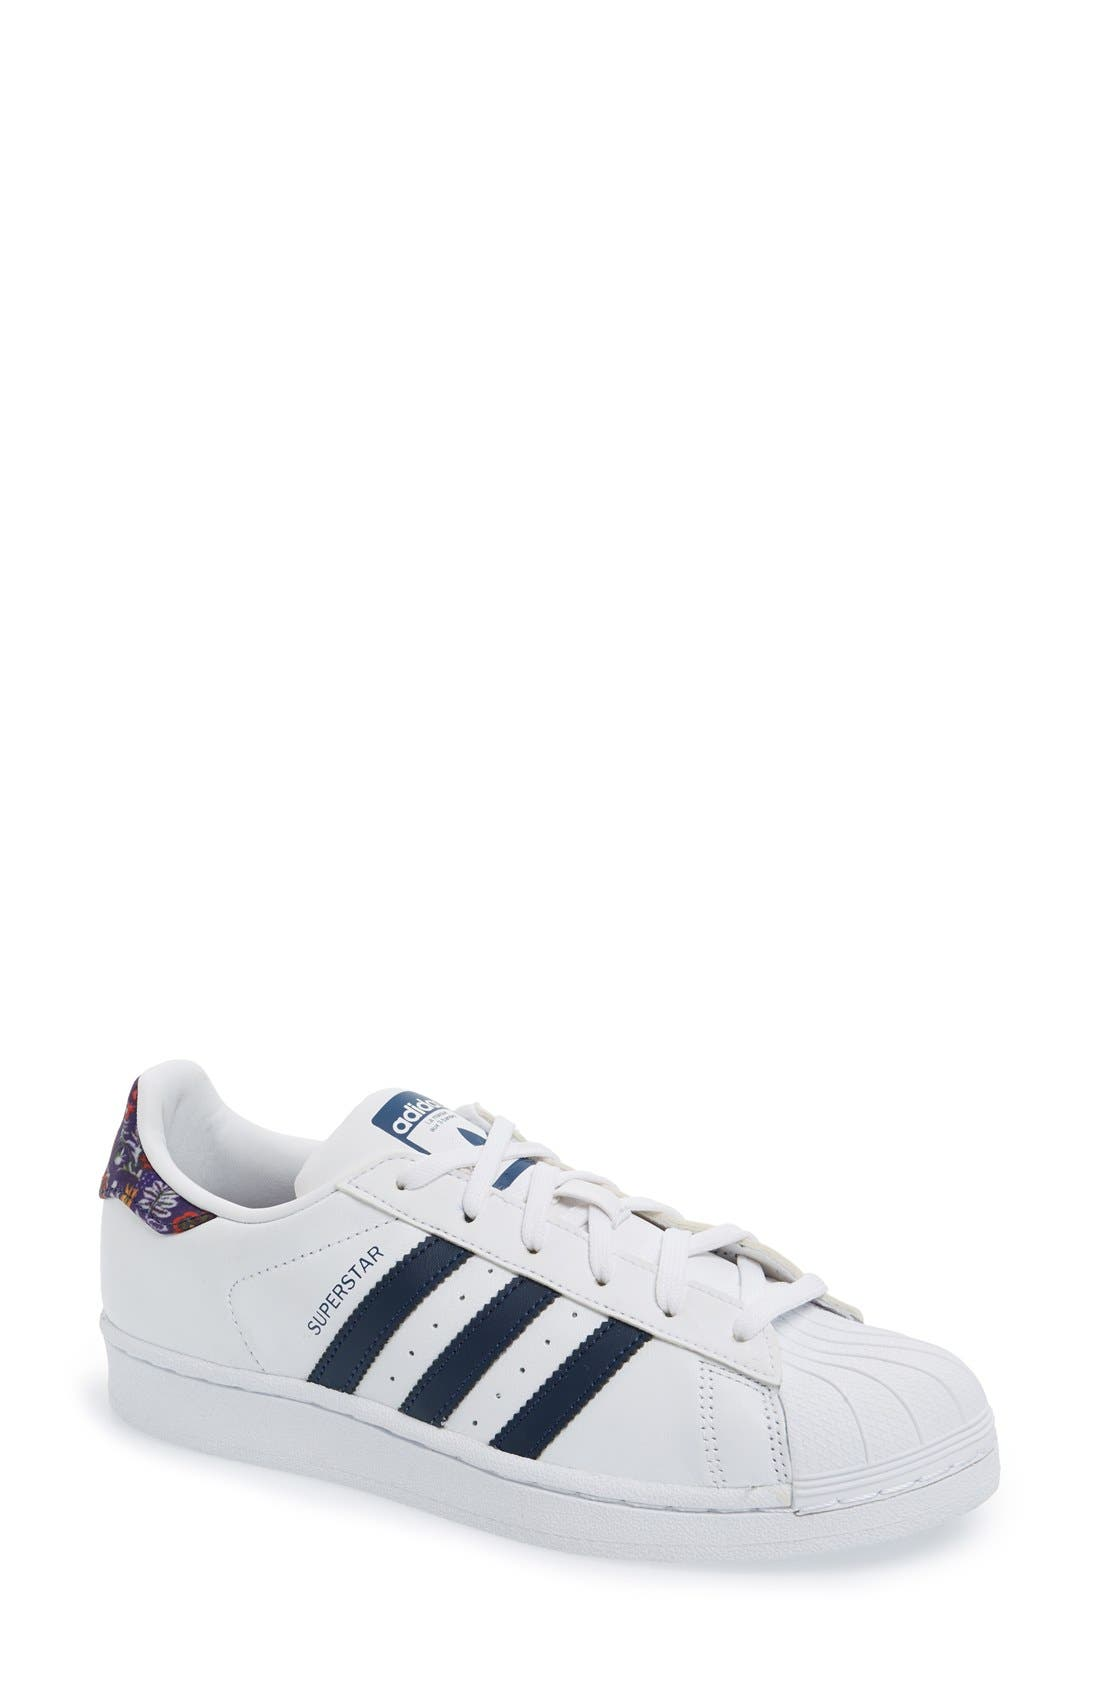 Alternate Image 1 Selected - adidas x The FARM Company Superstar Sneaker